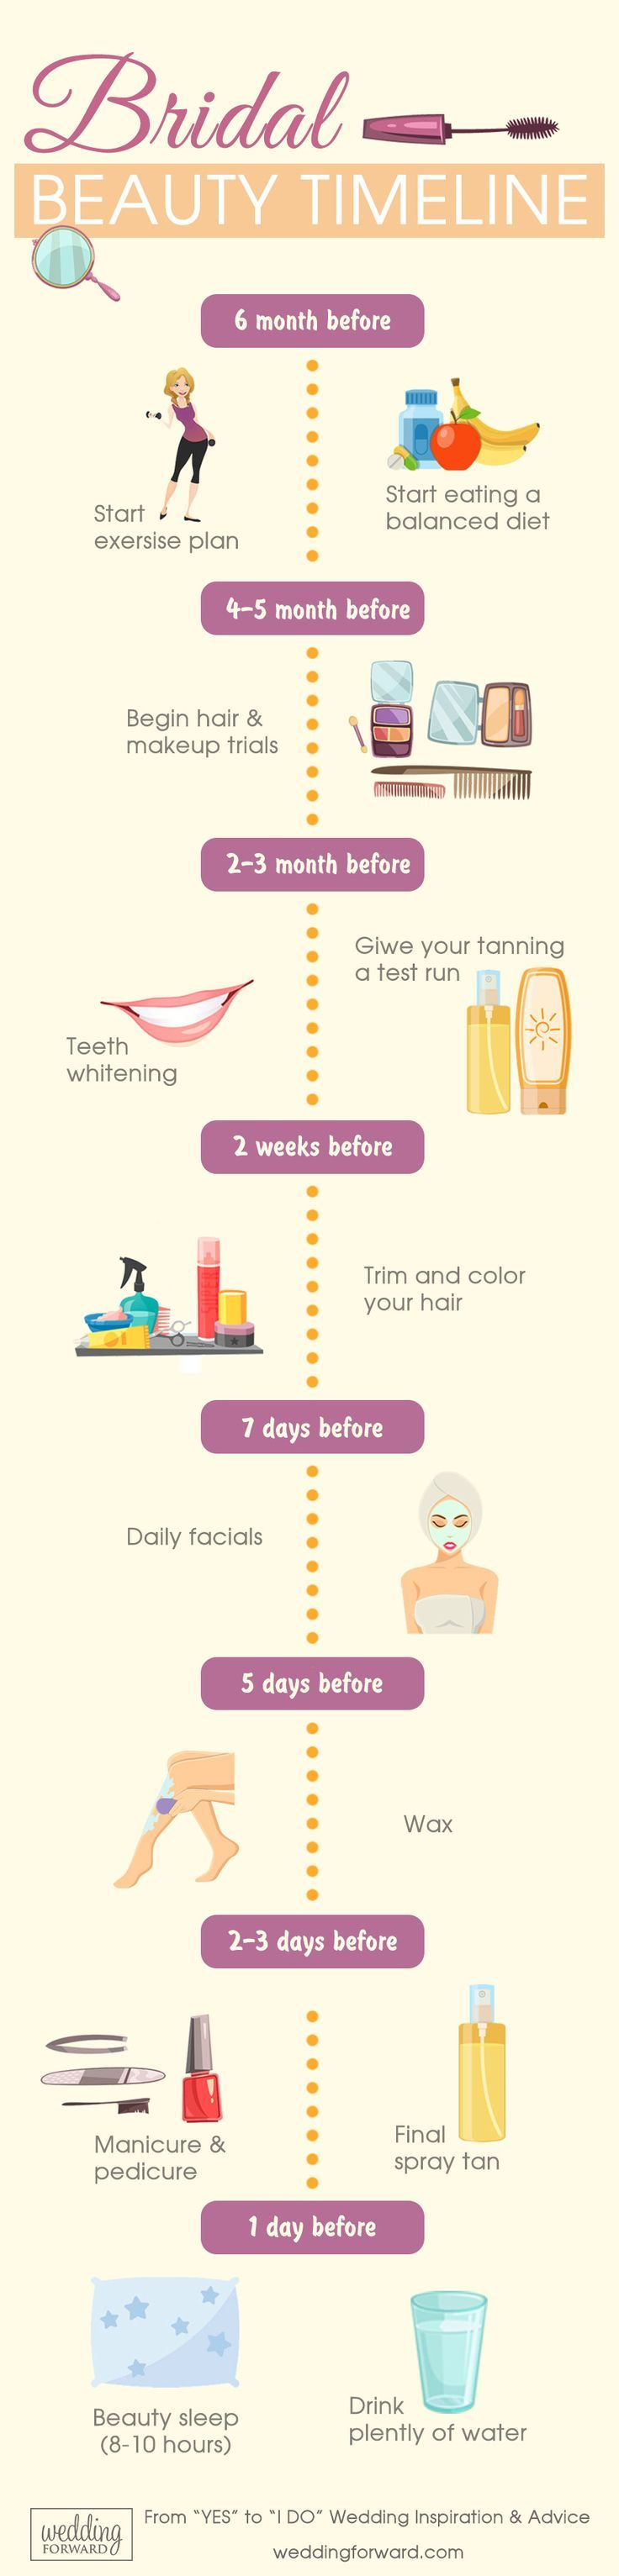 Bridal Beauty Timeline From Engagement To Wedding Day ❤️ See more: http://www.weddingforward.com/bridal-beauty-timeline-engagement-wedding-day/ #weddings